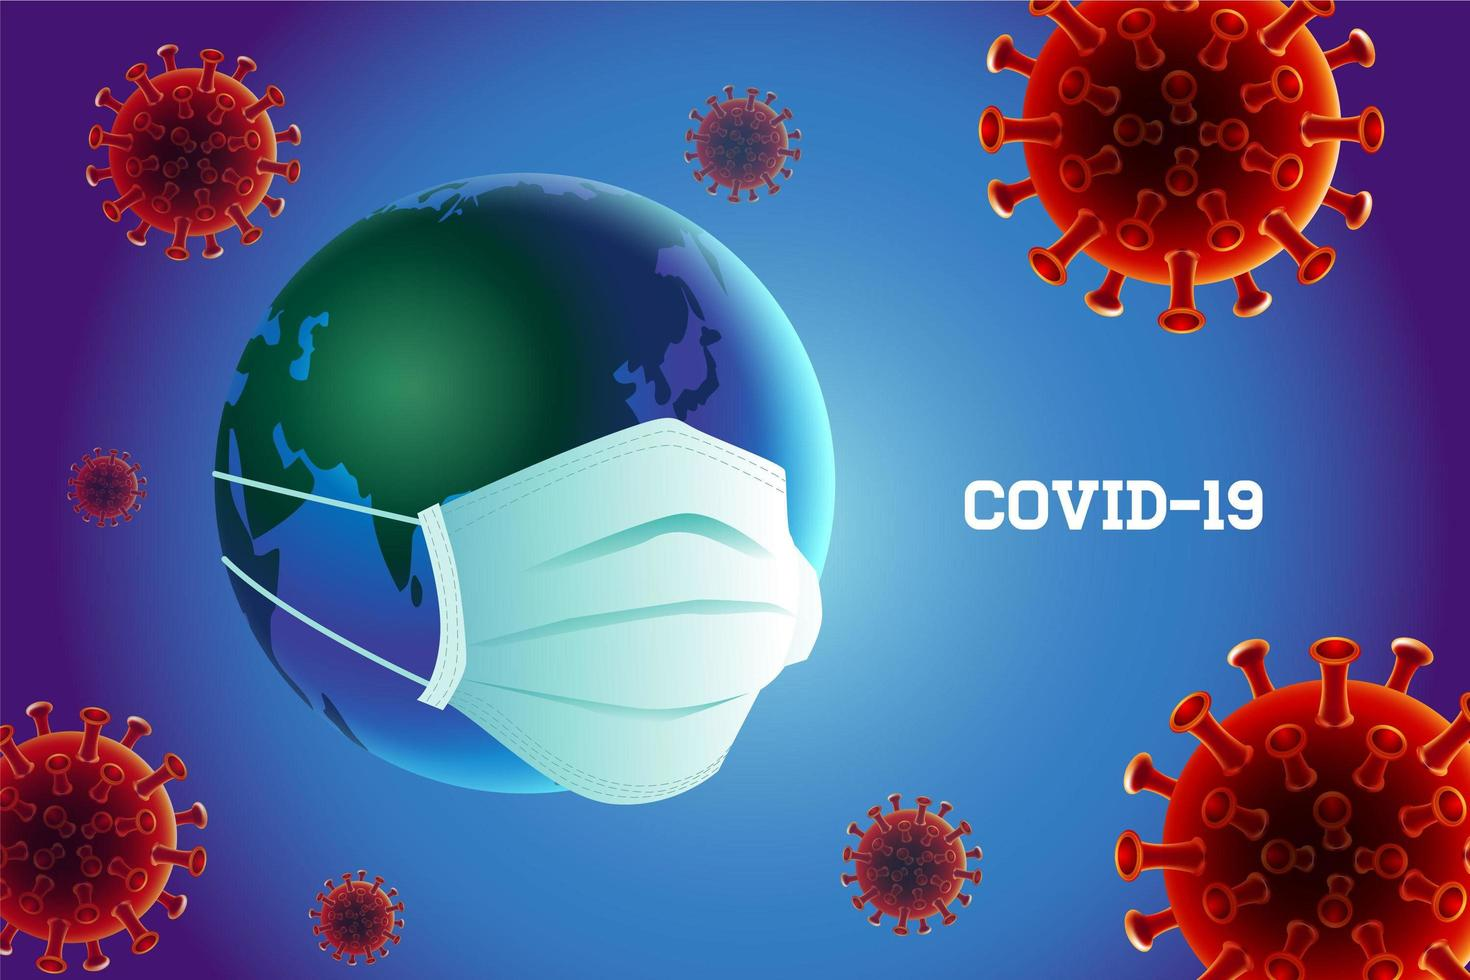 Coronavirus COVID-19 Prevention with Earth Wearing Mask vector